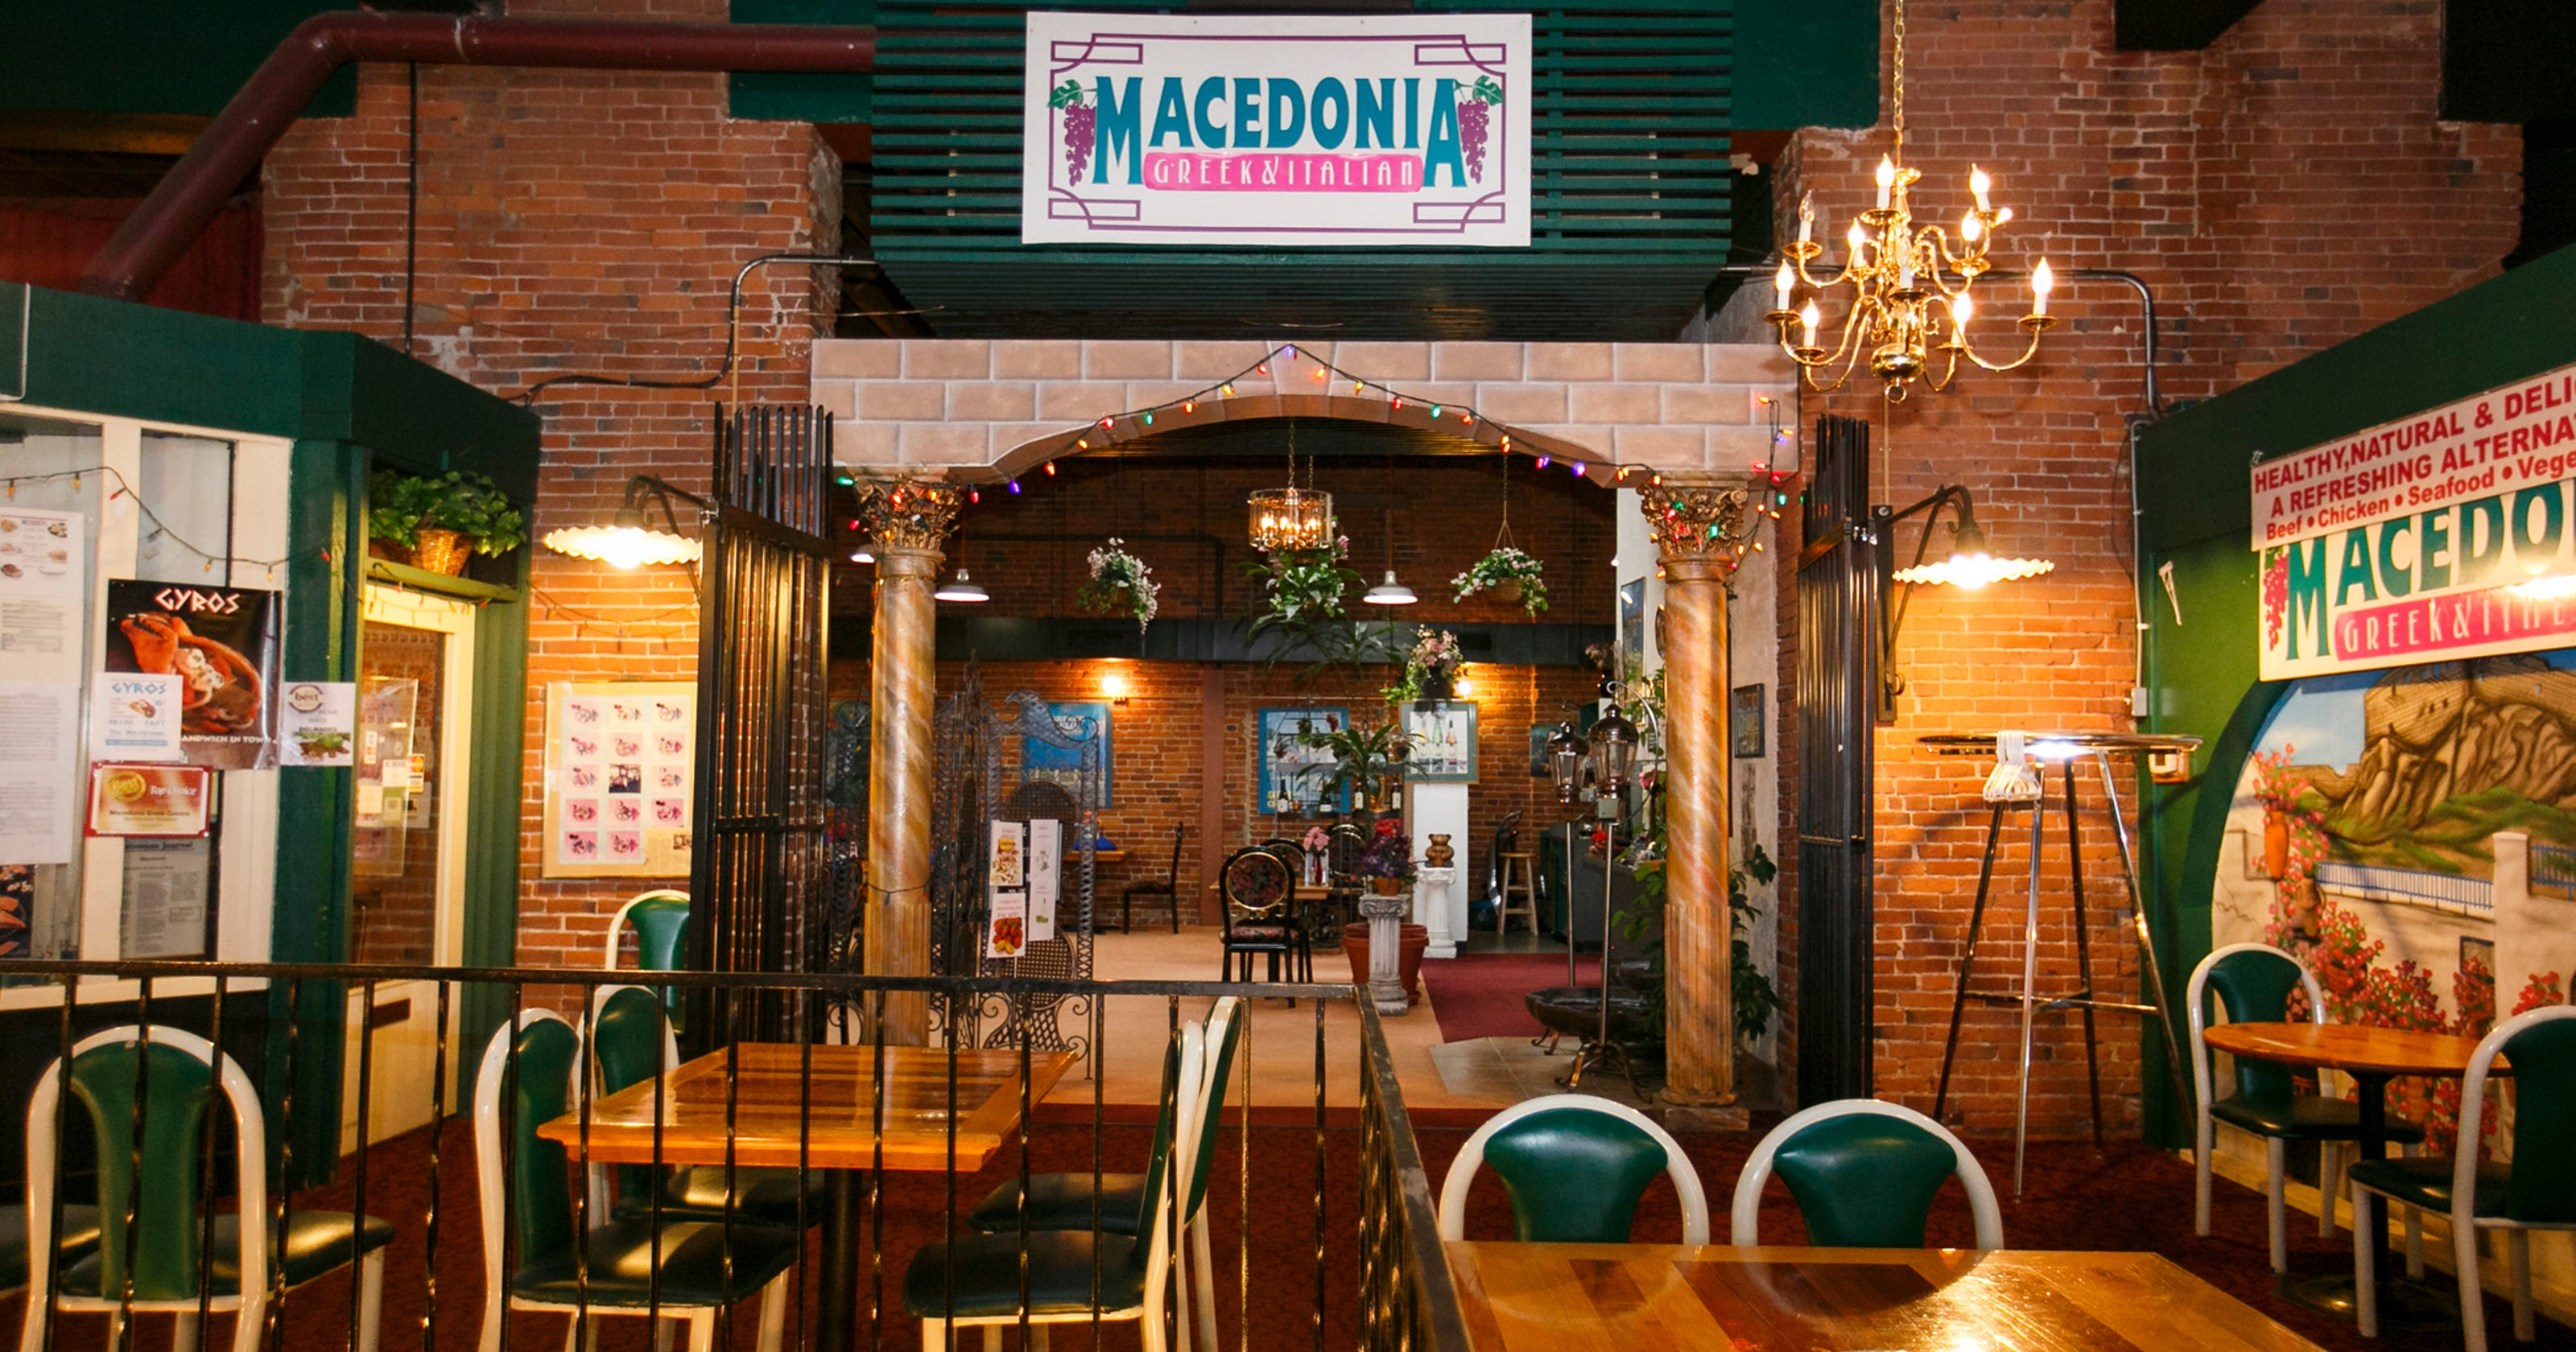 Macedonia will close after 21 years in Reed Opera House